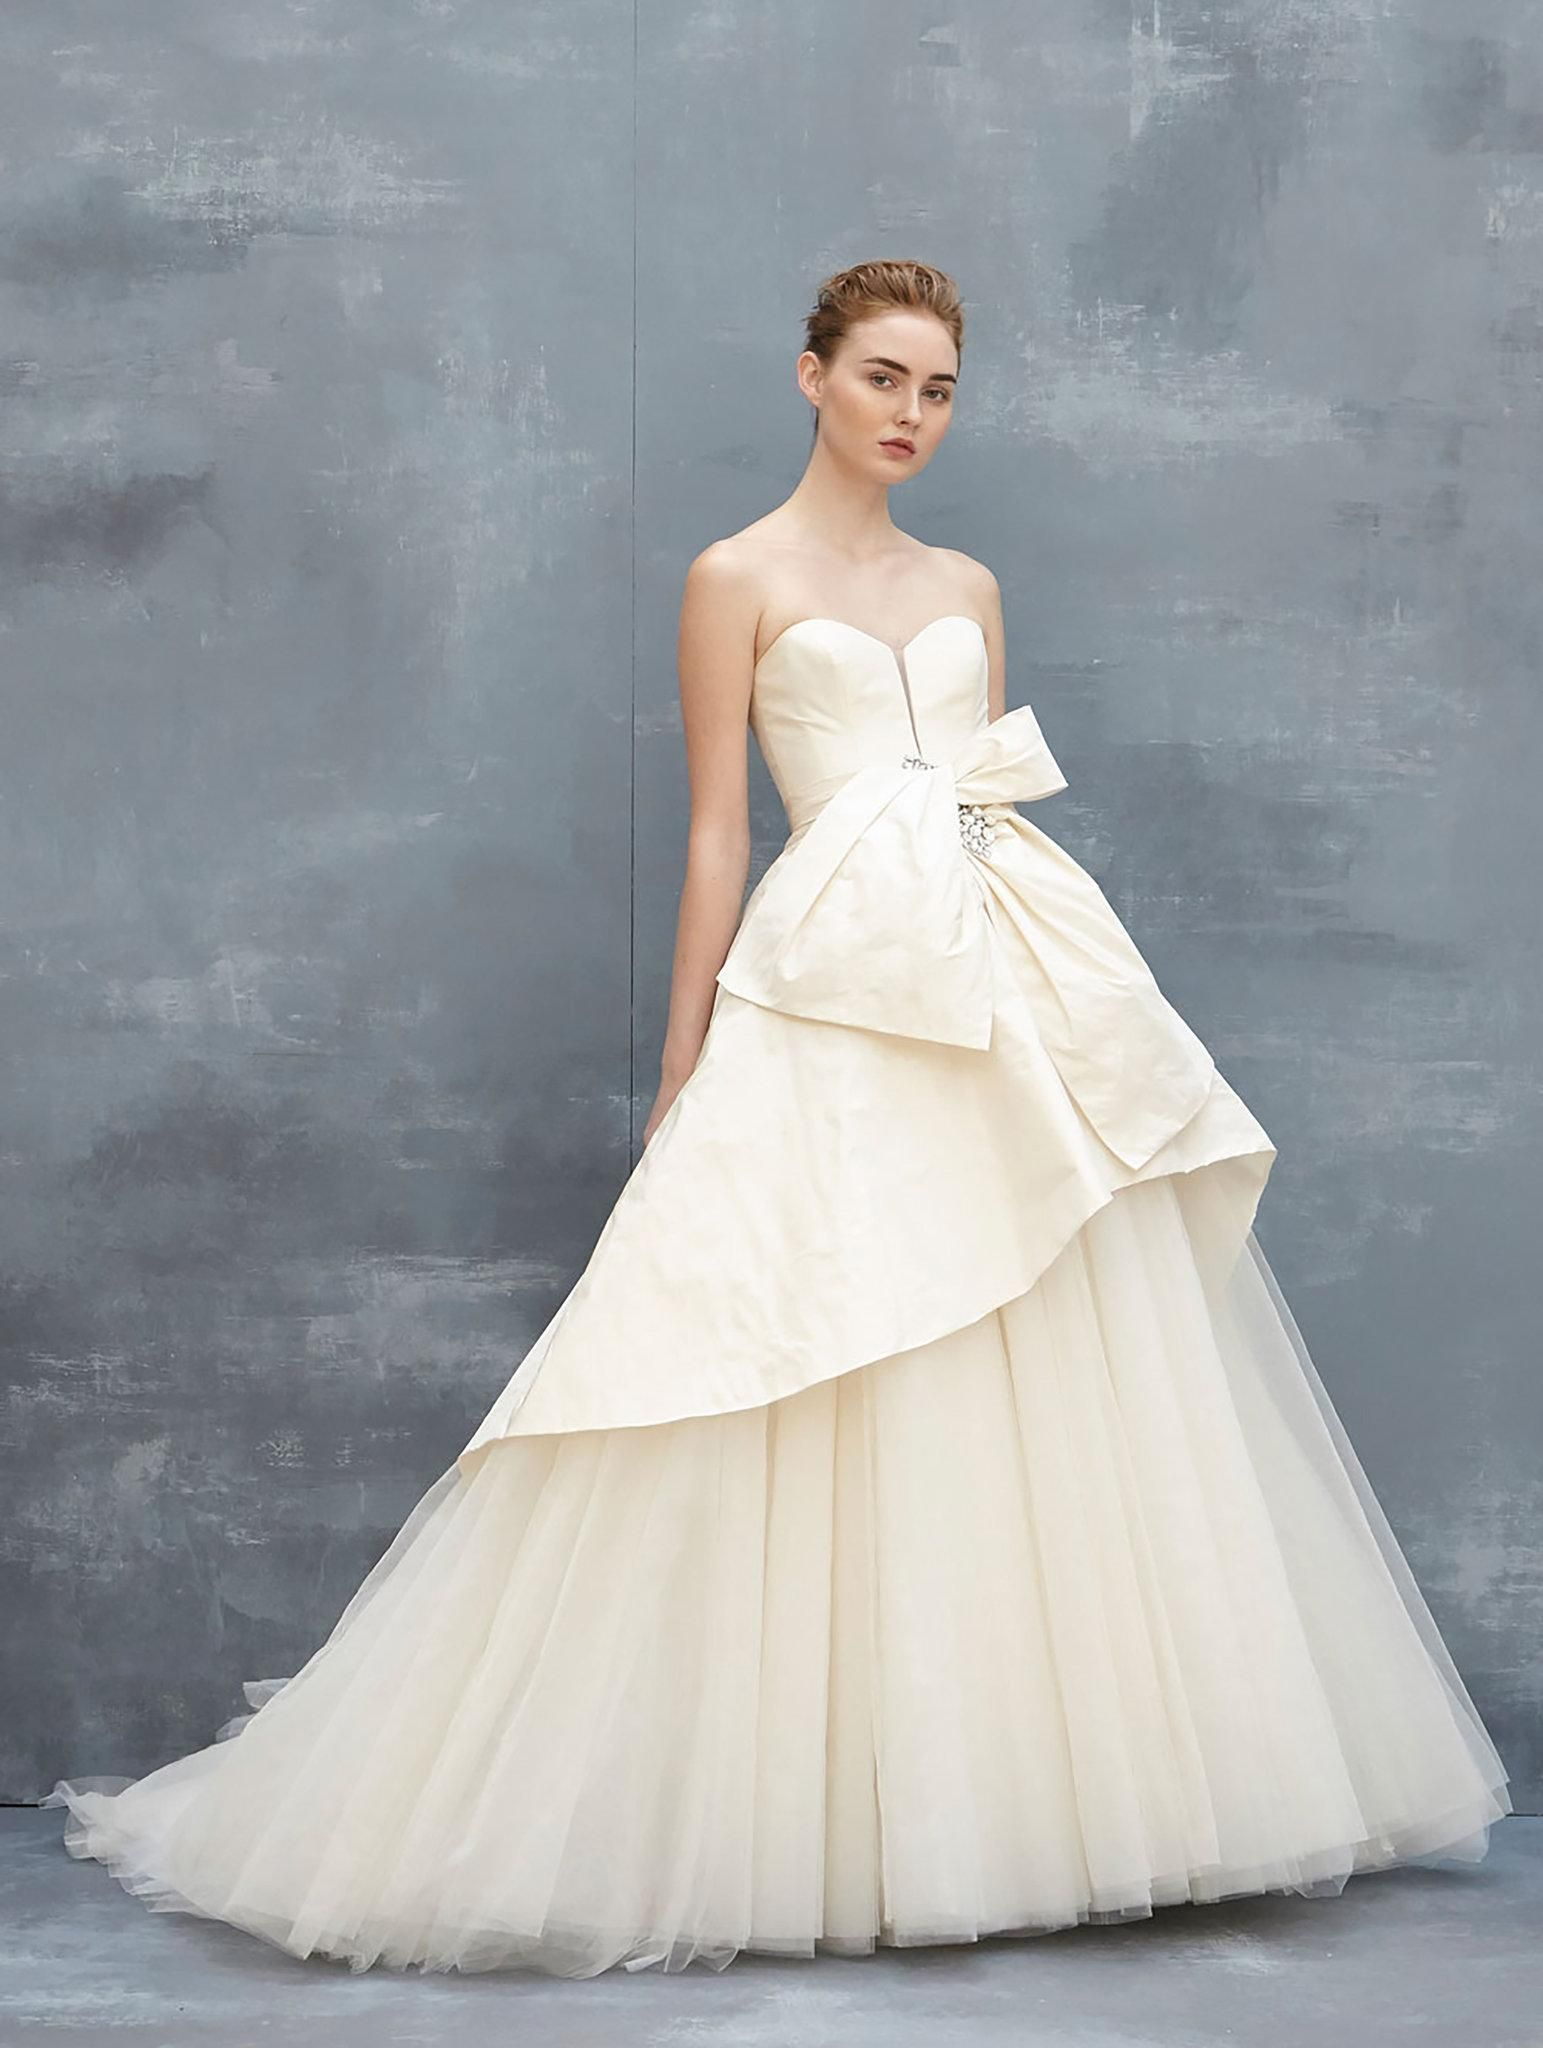 Simplicity by Amsale | Tulle balls, Gowns and Wedding dress